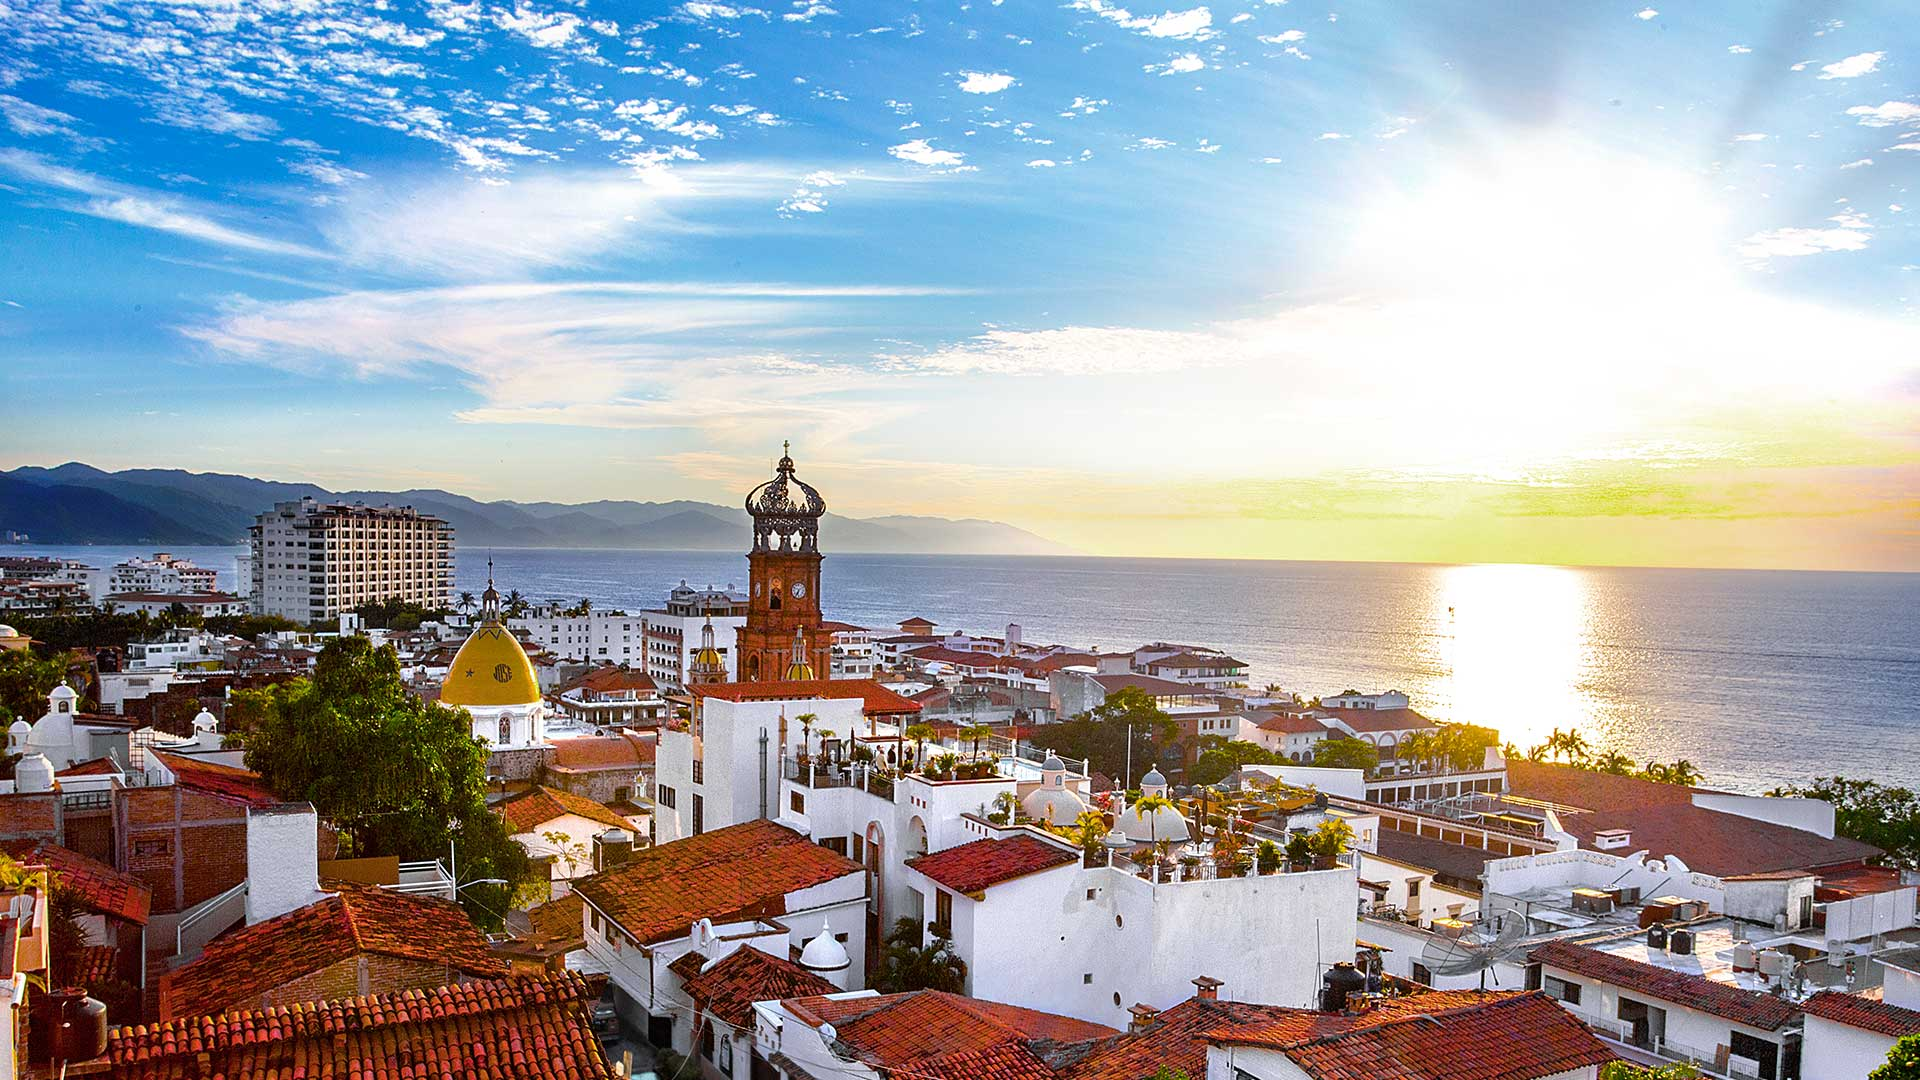 cabo san lucas vs puerto vallarta - discover what location suits you